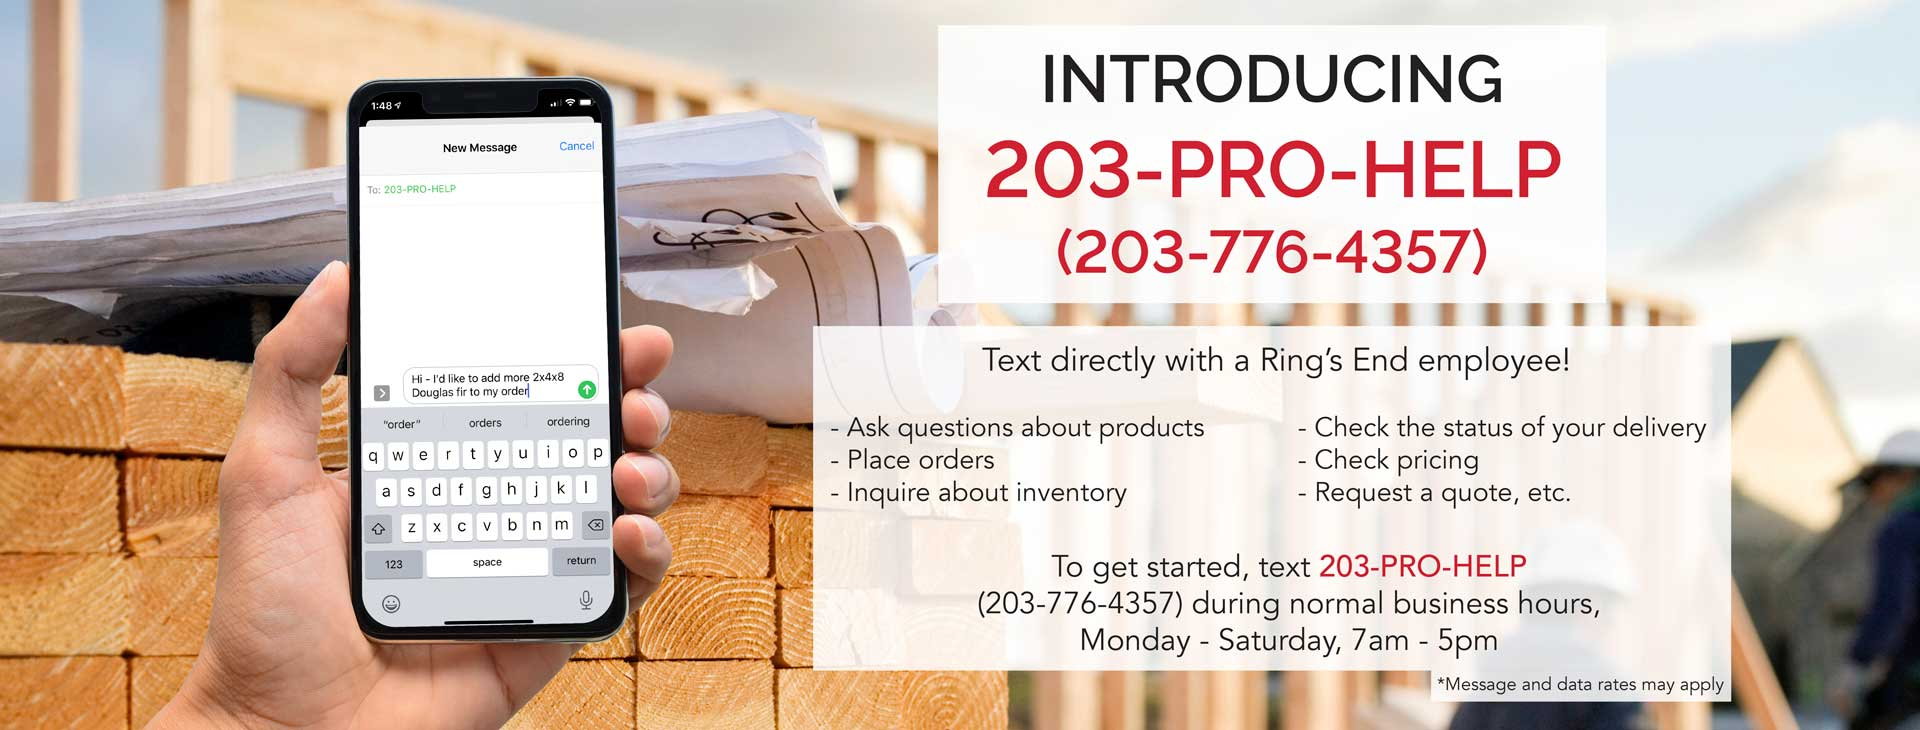 Call or Text 203-PRO-HELP